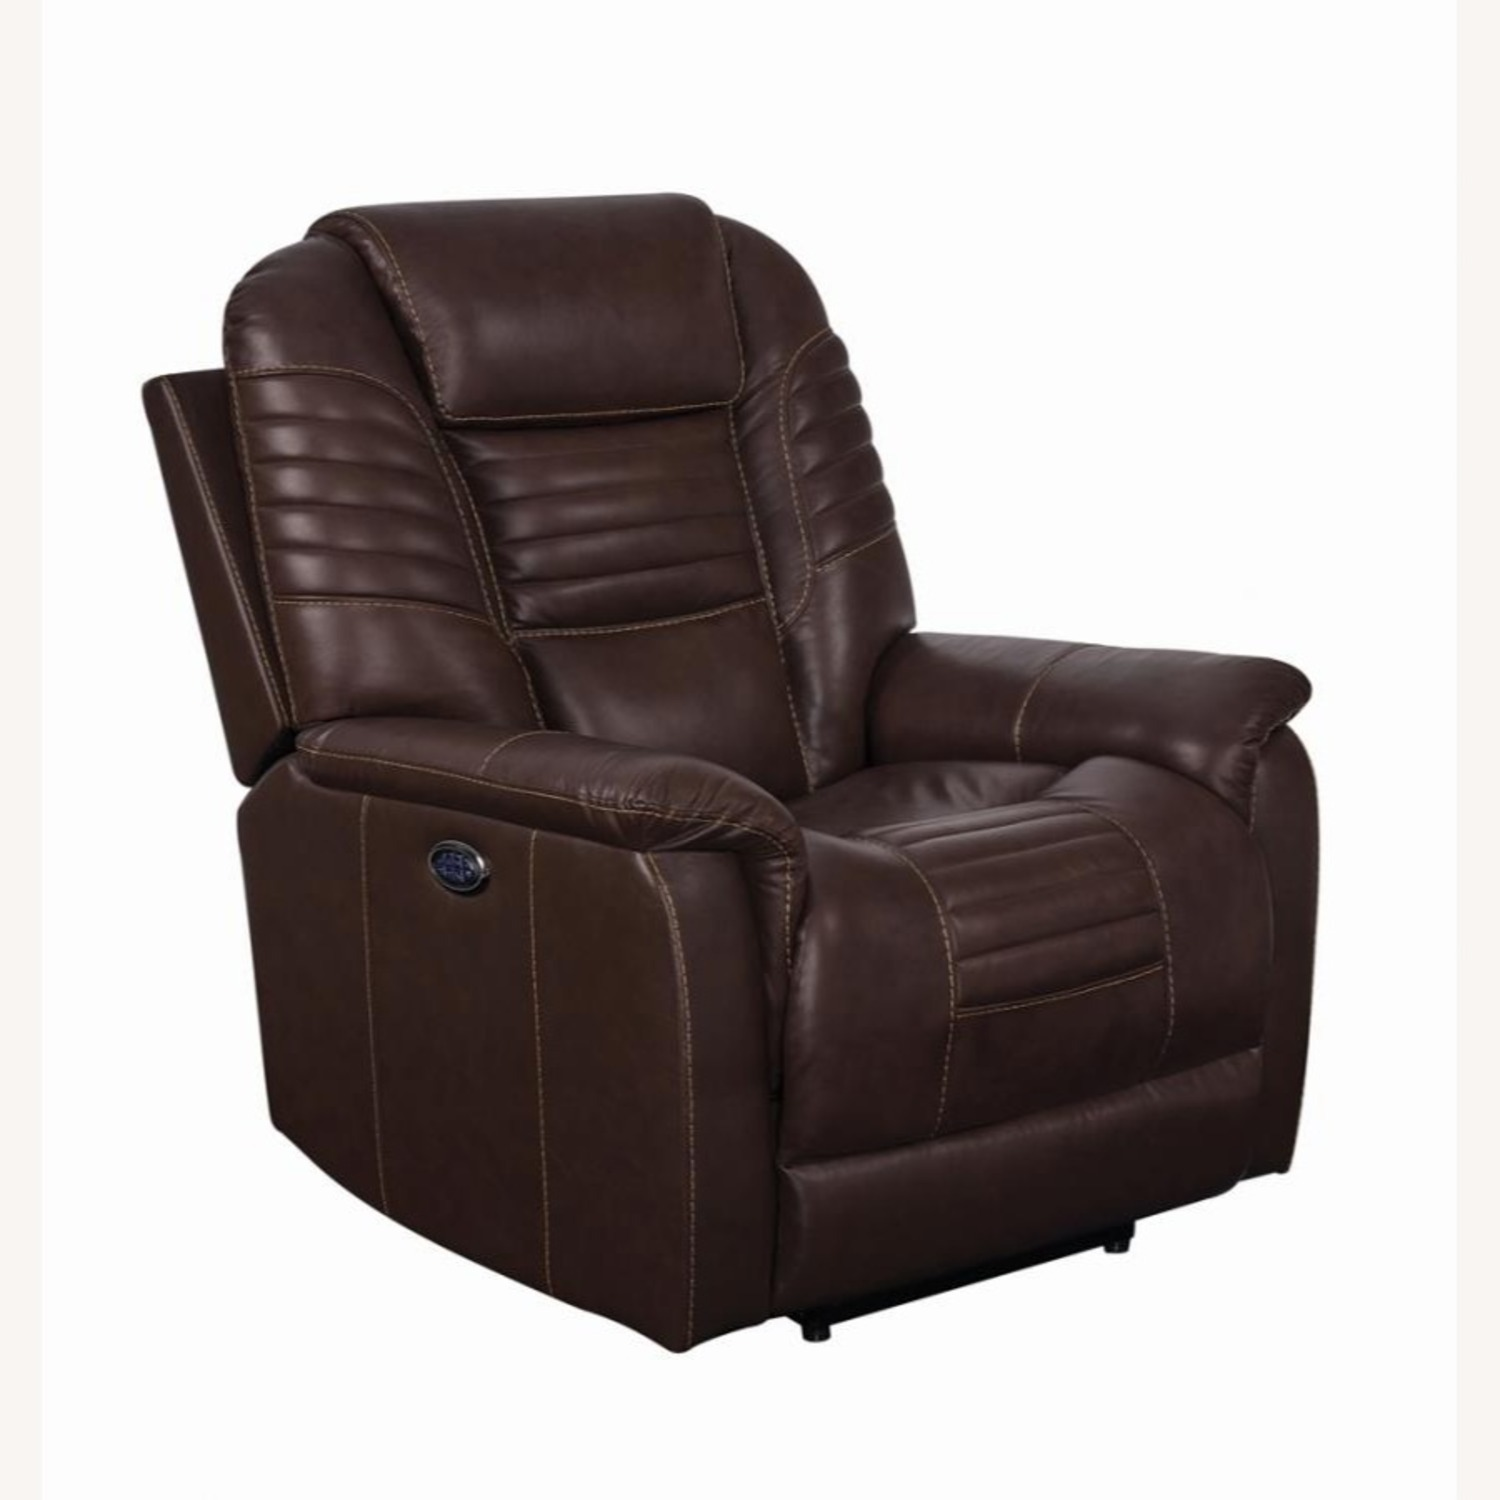 Power Recliner In Cozy Brown Leather Upholstery - image-0